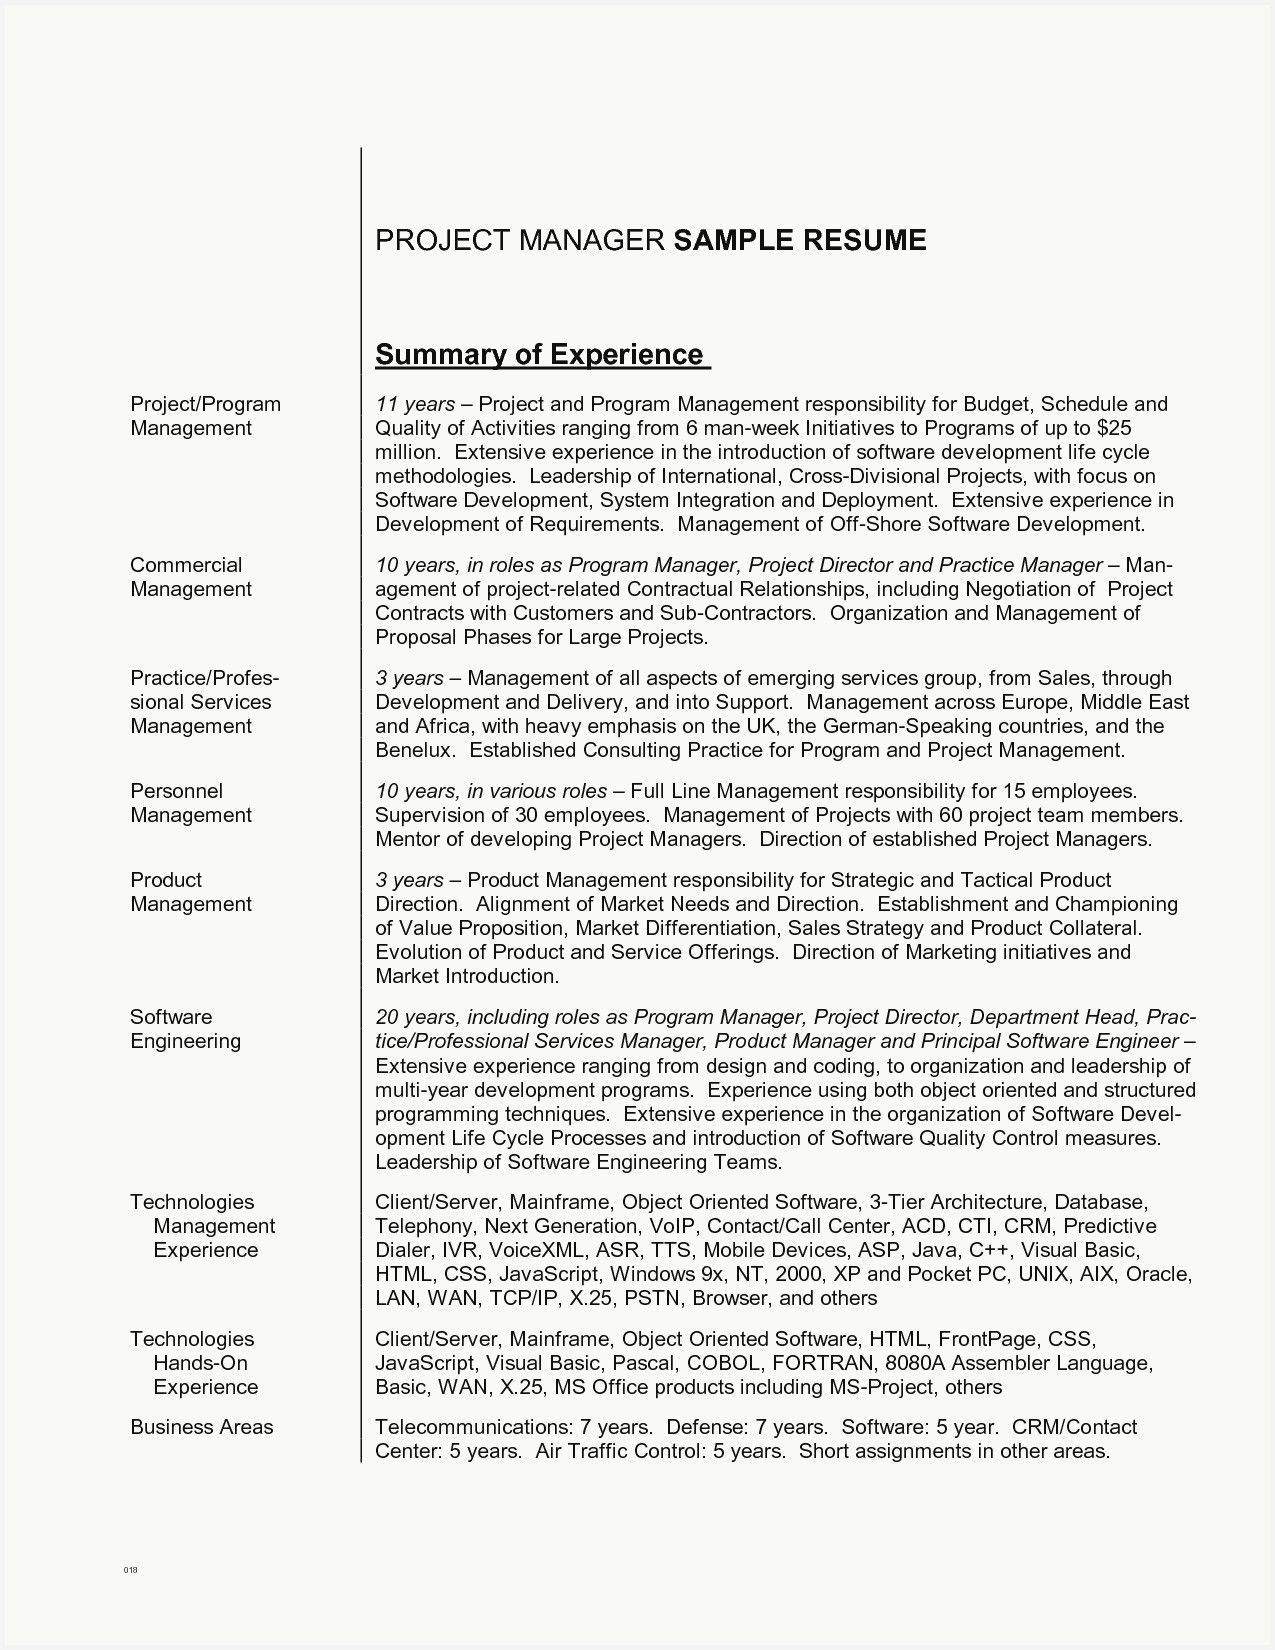 52 free project manager resume summary gallery in 2020